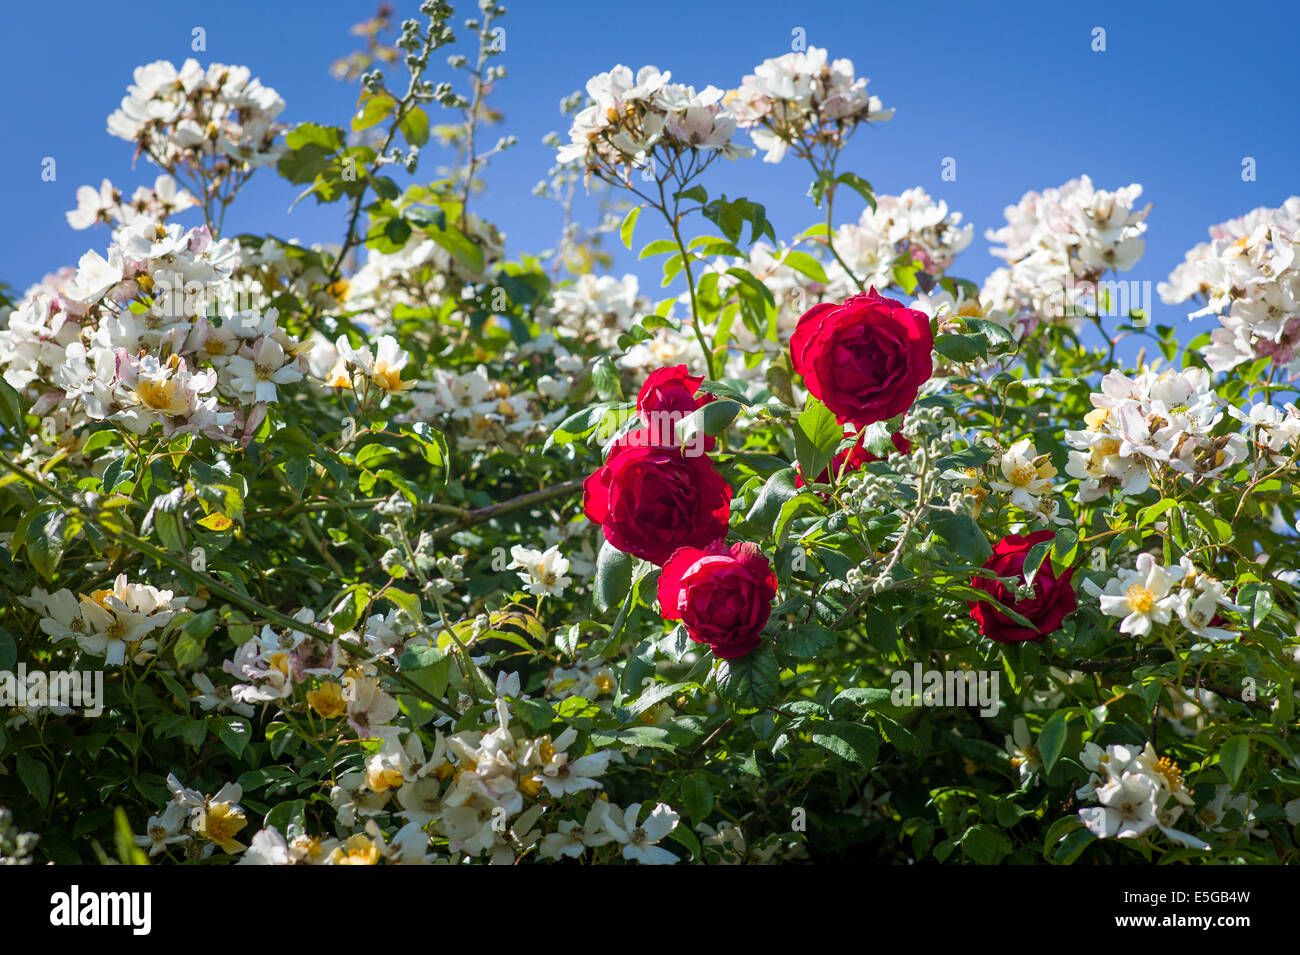 Rosa 'Wedding Day' and Rosa 'Danse de Feu' growing together in UK - Stock Image